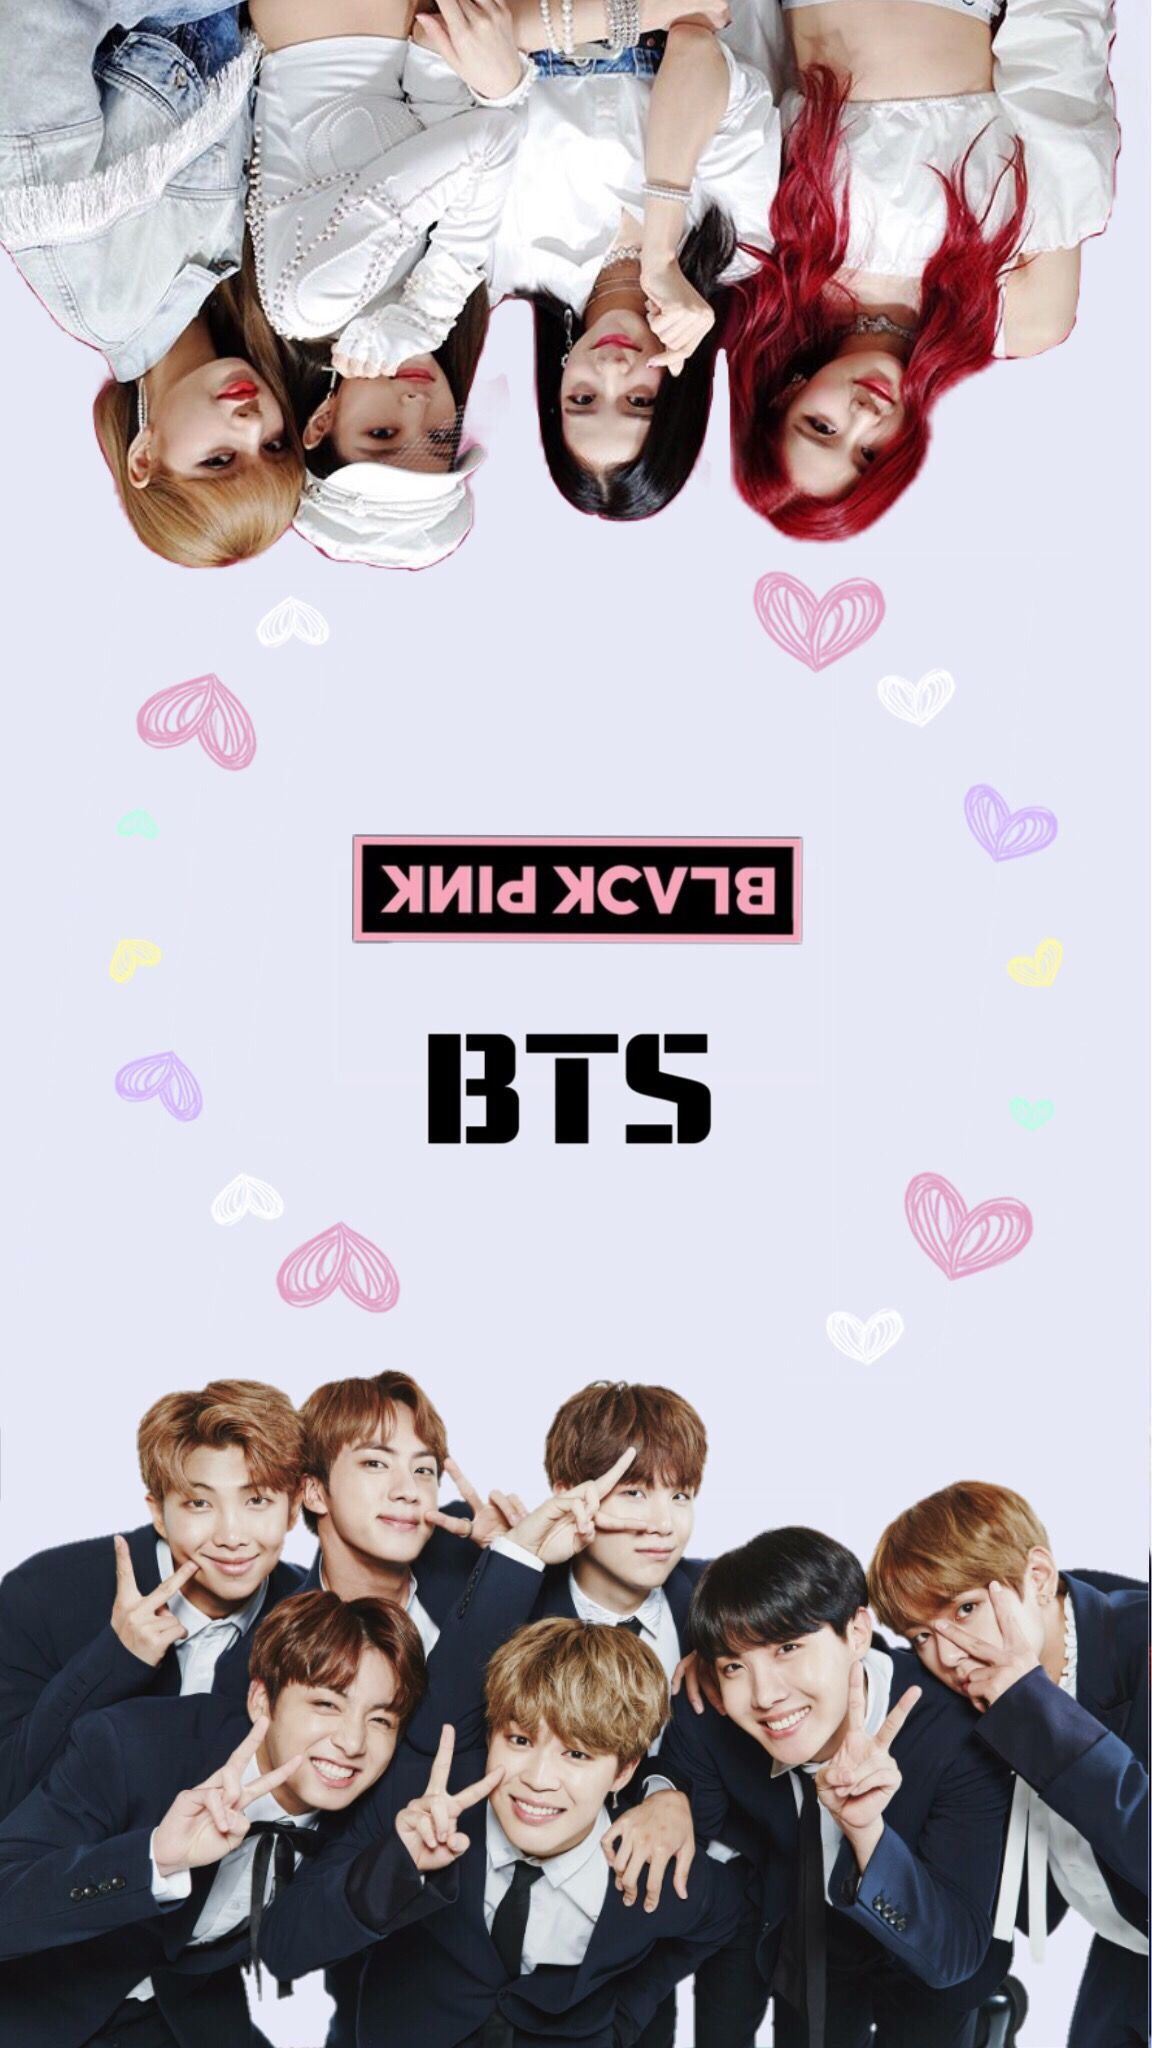 12 Bts And Blackpink Anime Wallpapers On Wallpapersafari